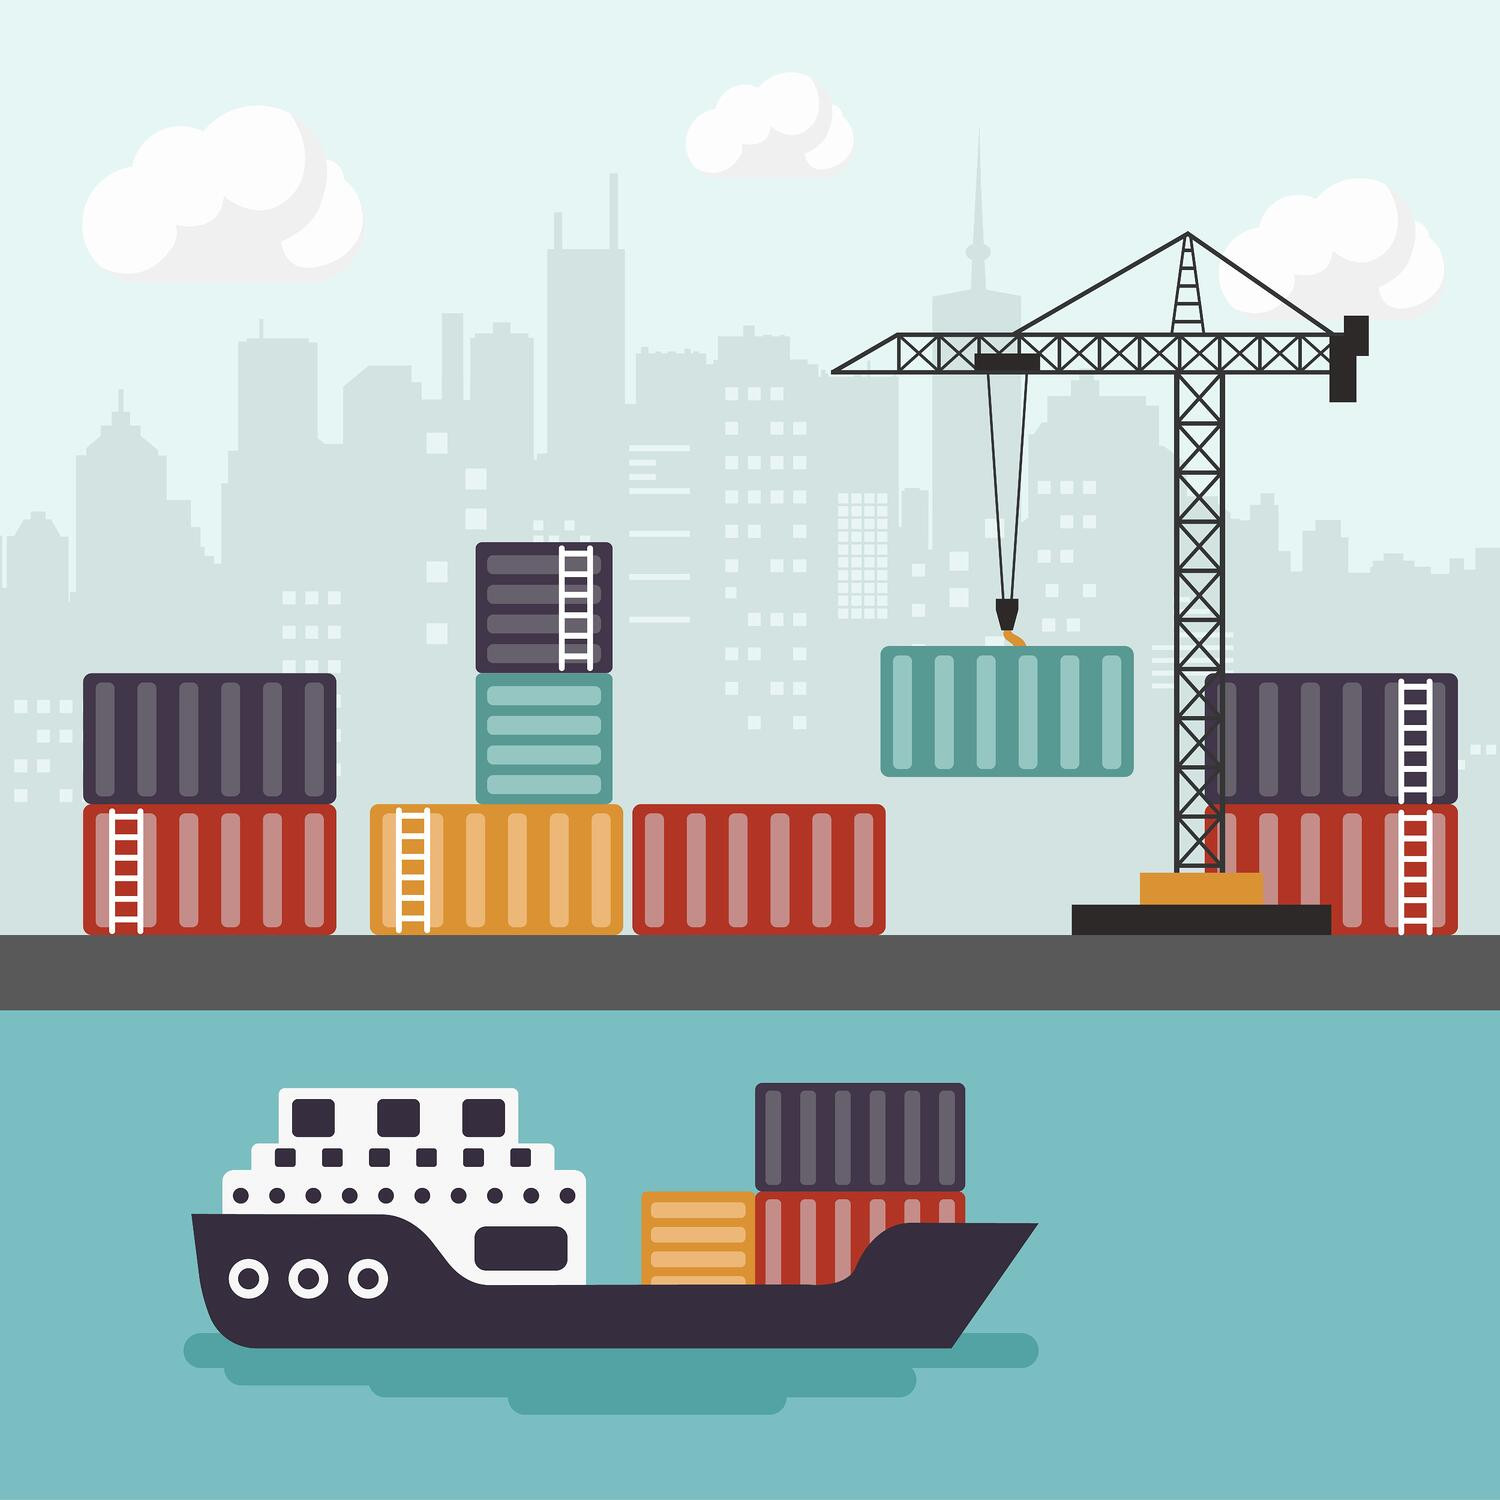 What Are Incoterms 2010 and Why Should I Care About Them?